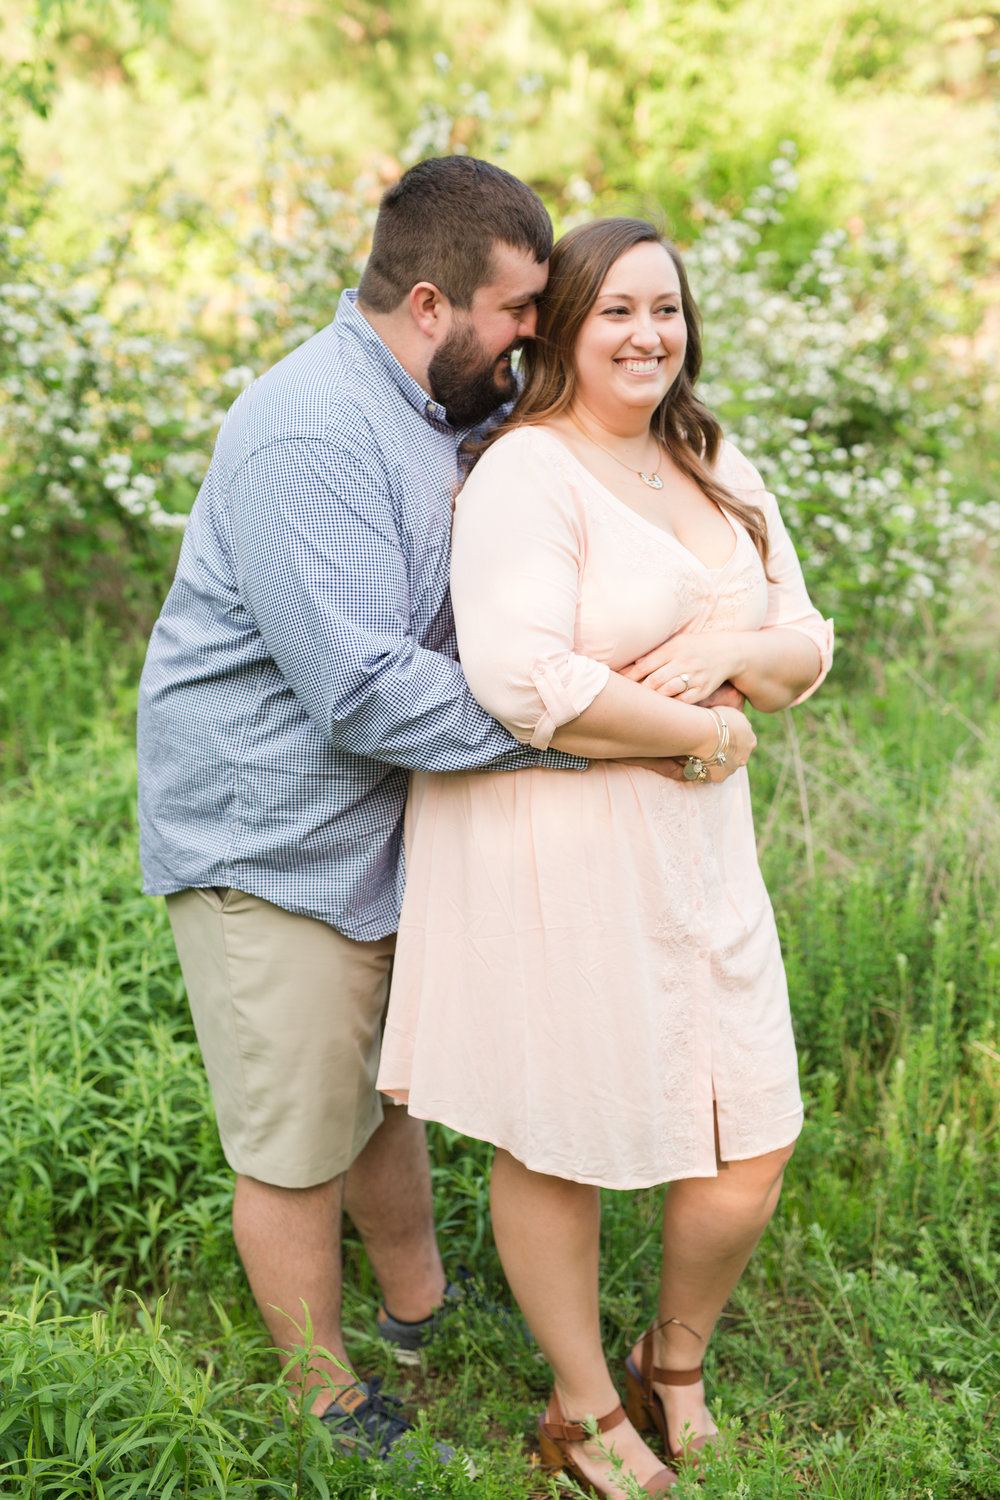 EngagementSession-77.jpg